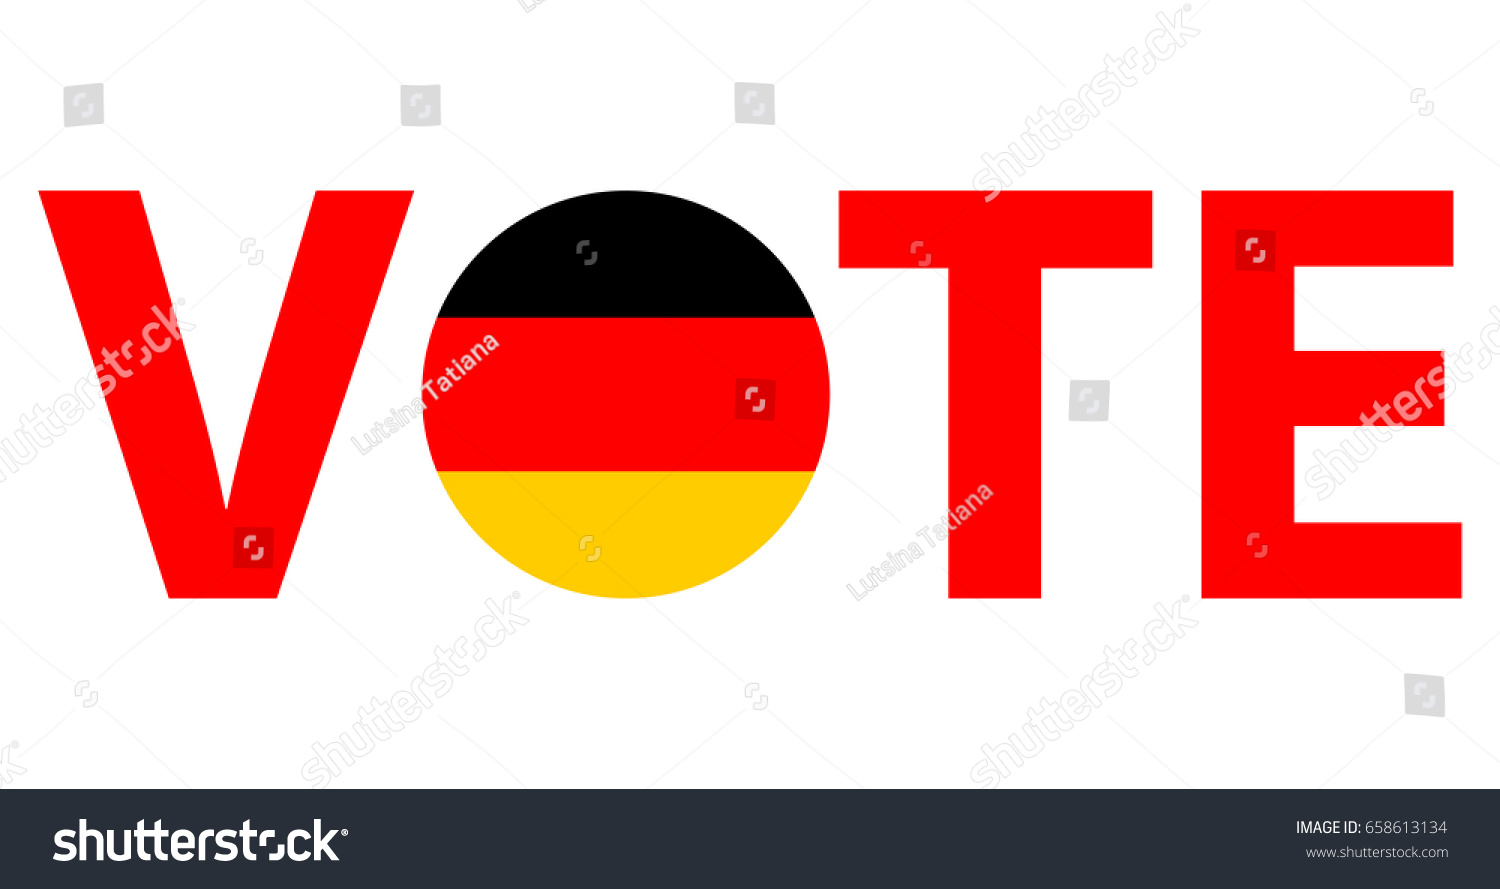 Voting Symbols Vector Design Template Elections Stock Vector ...